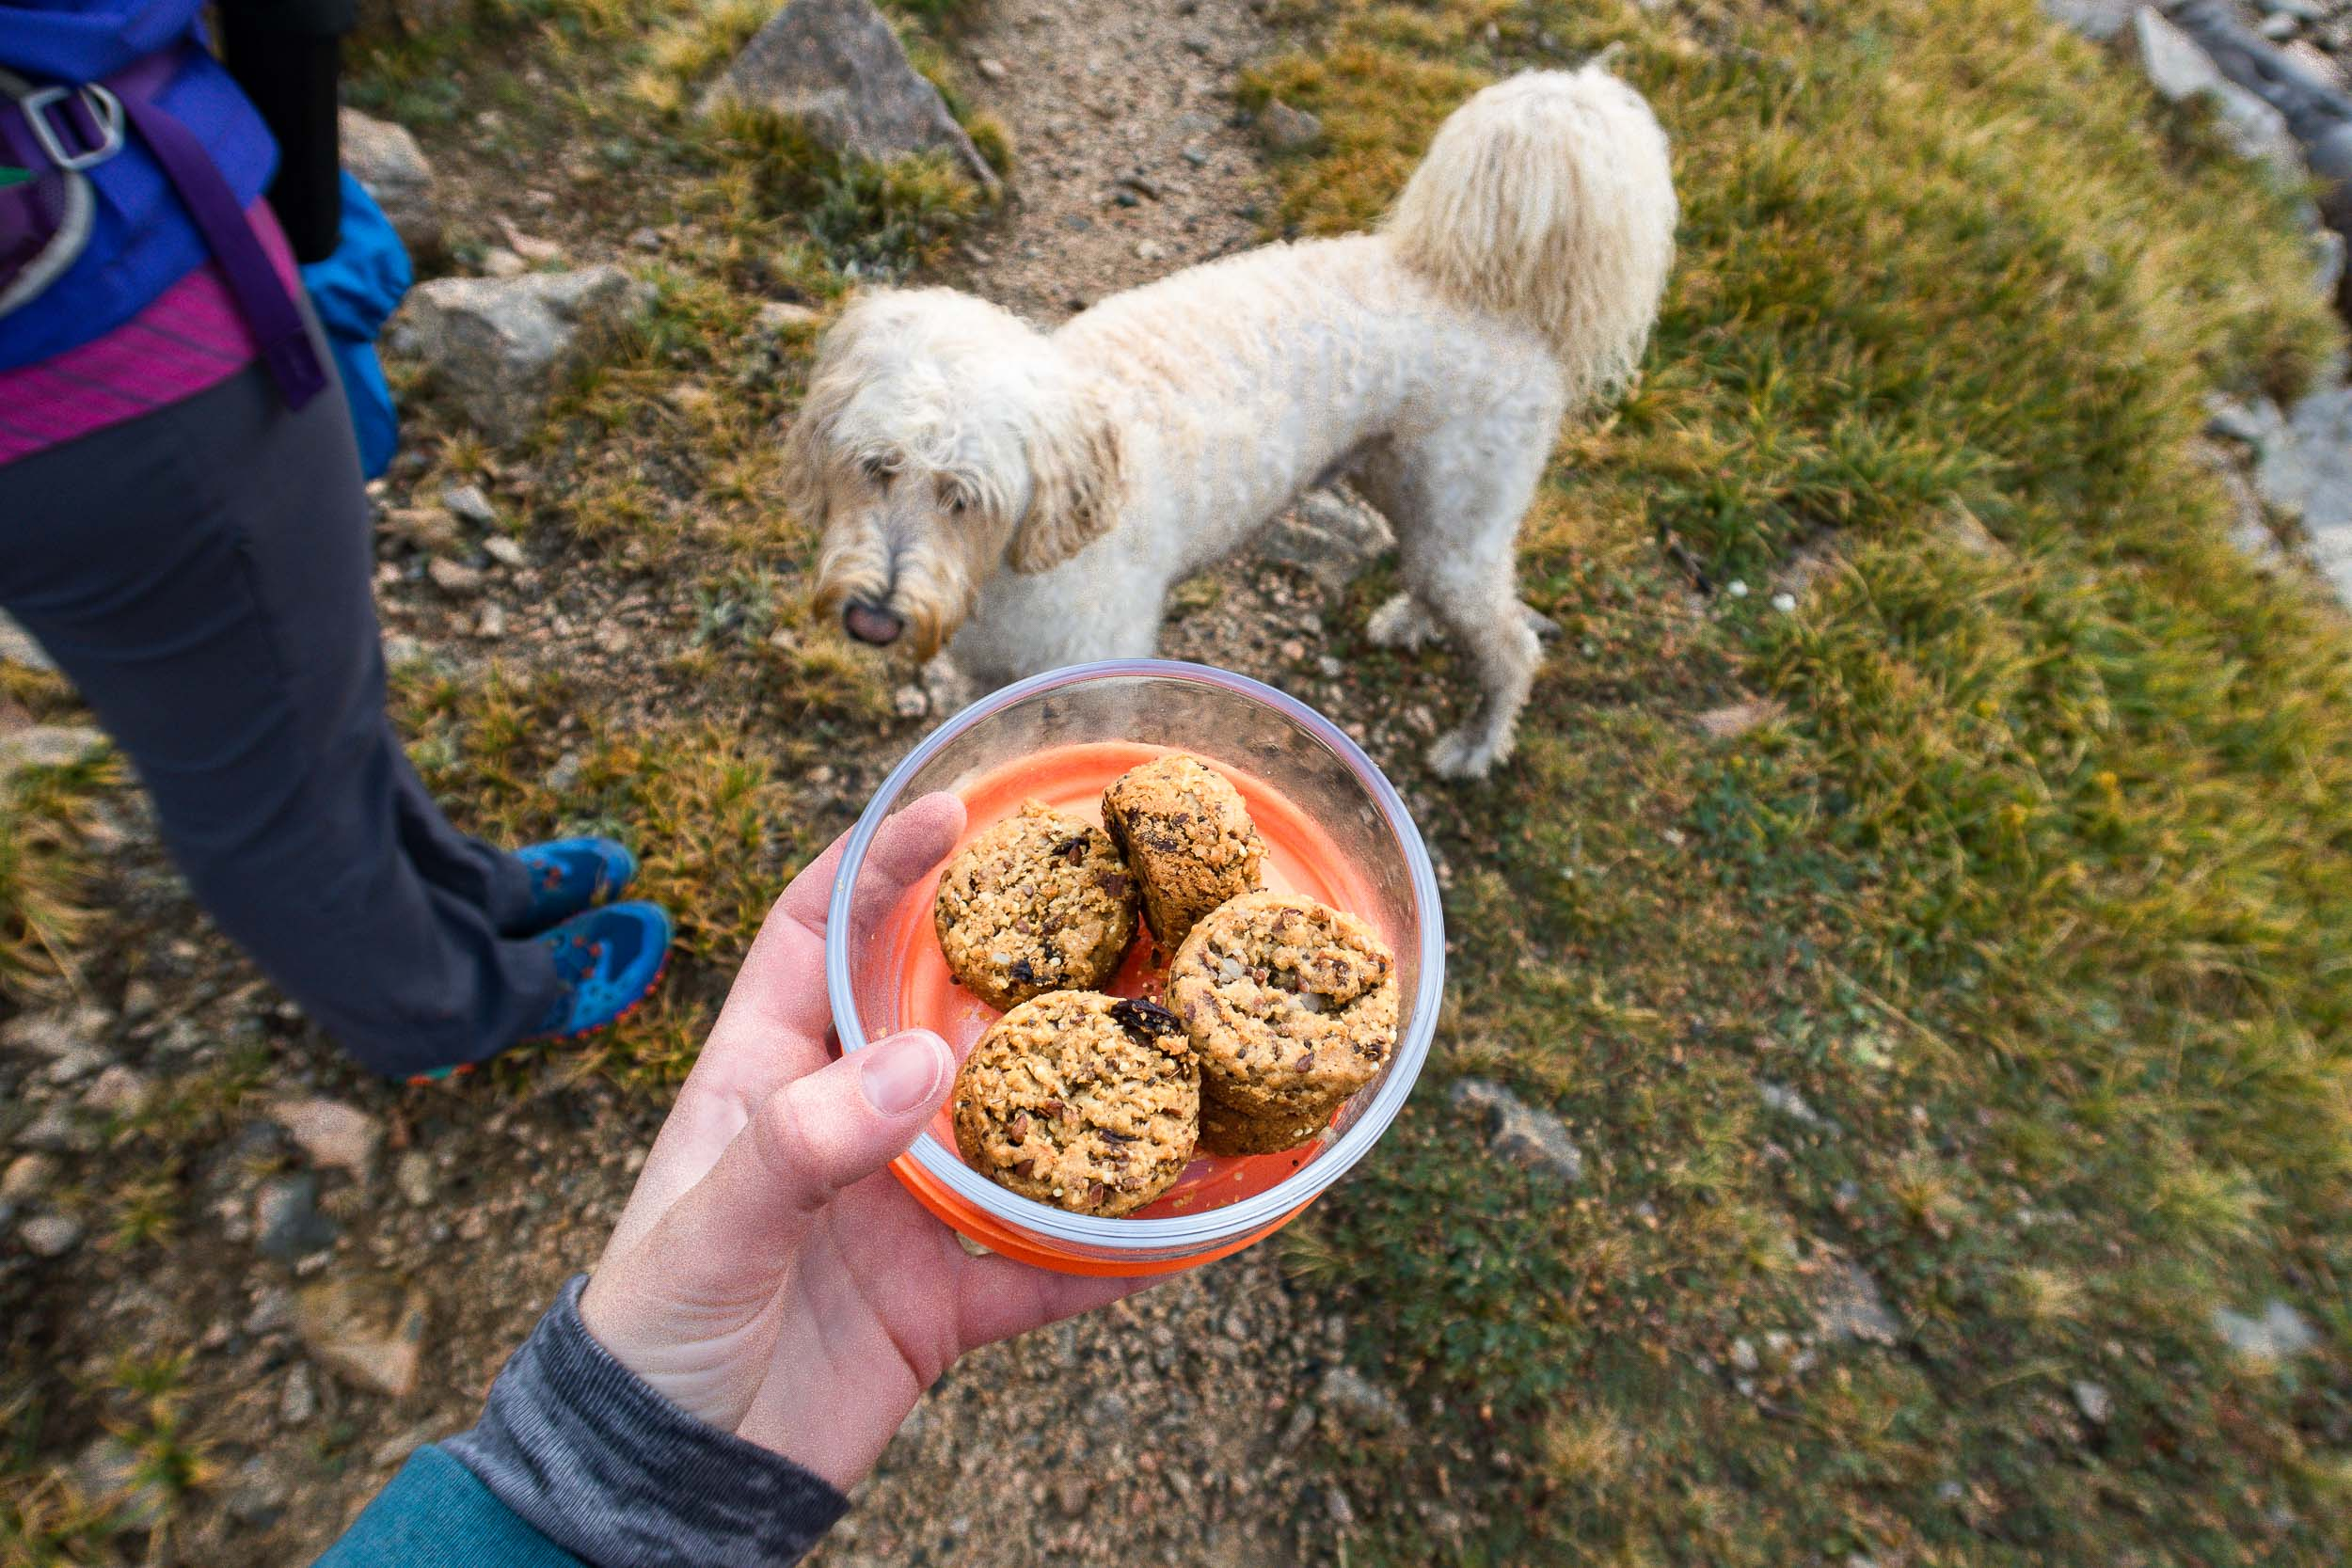 Tip and tricks for having ZERO WASTE while hiking and backpacking.